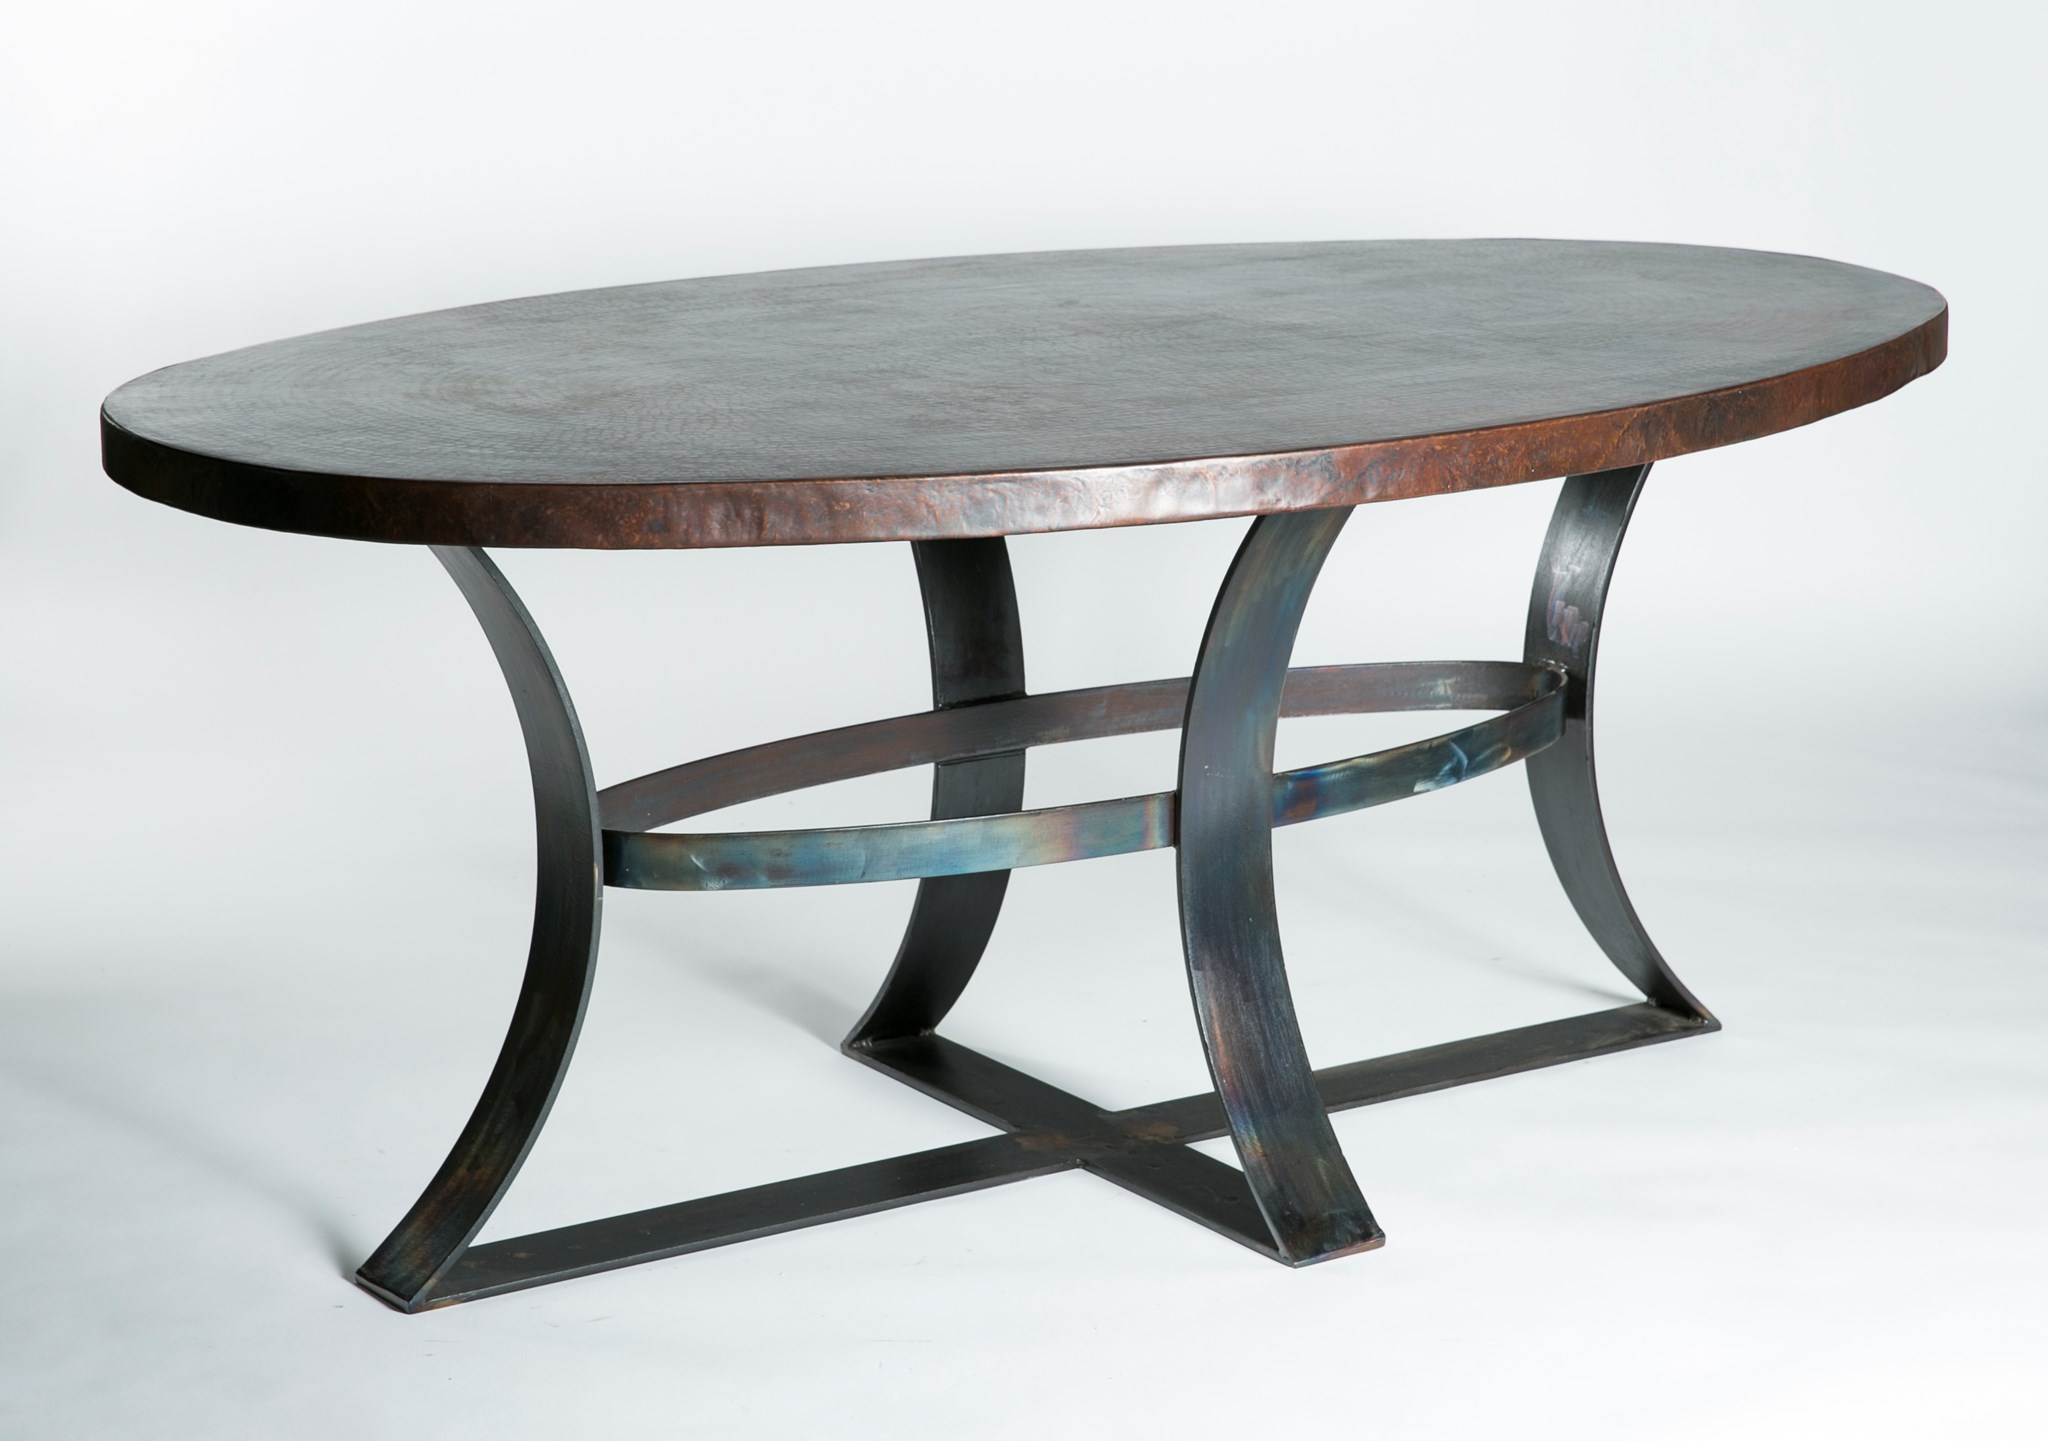 Avery Oval Dining Table With Dark Brown Hammered Copper Top Inside 2017 Avery Round Dining Tables (View 21 of 25)